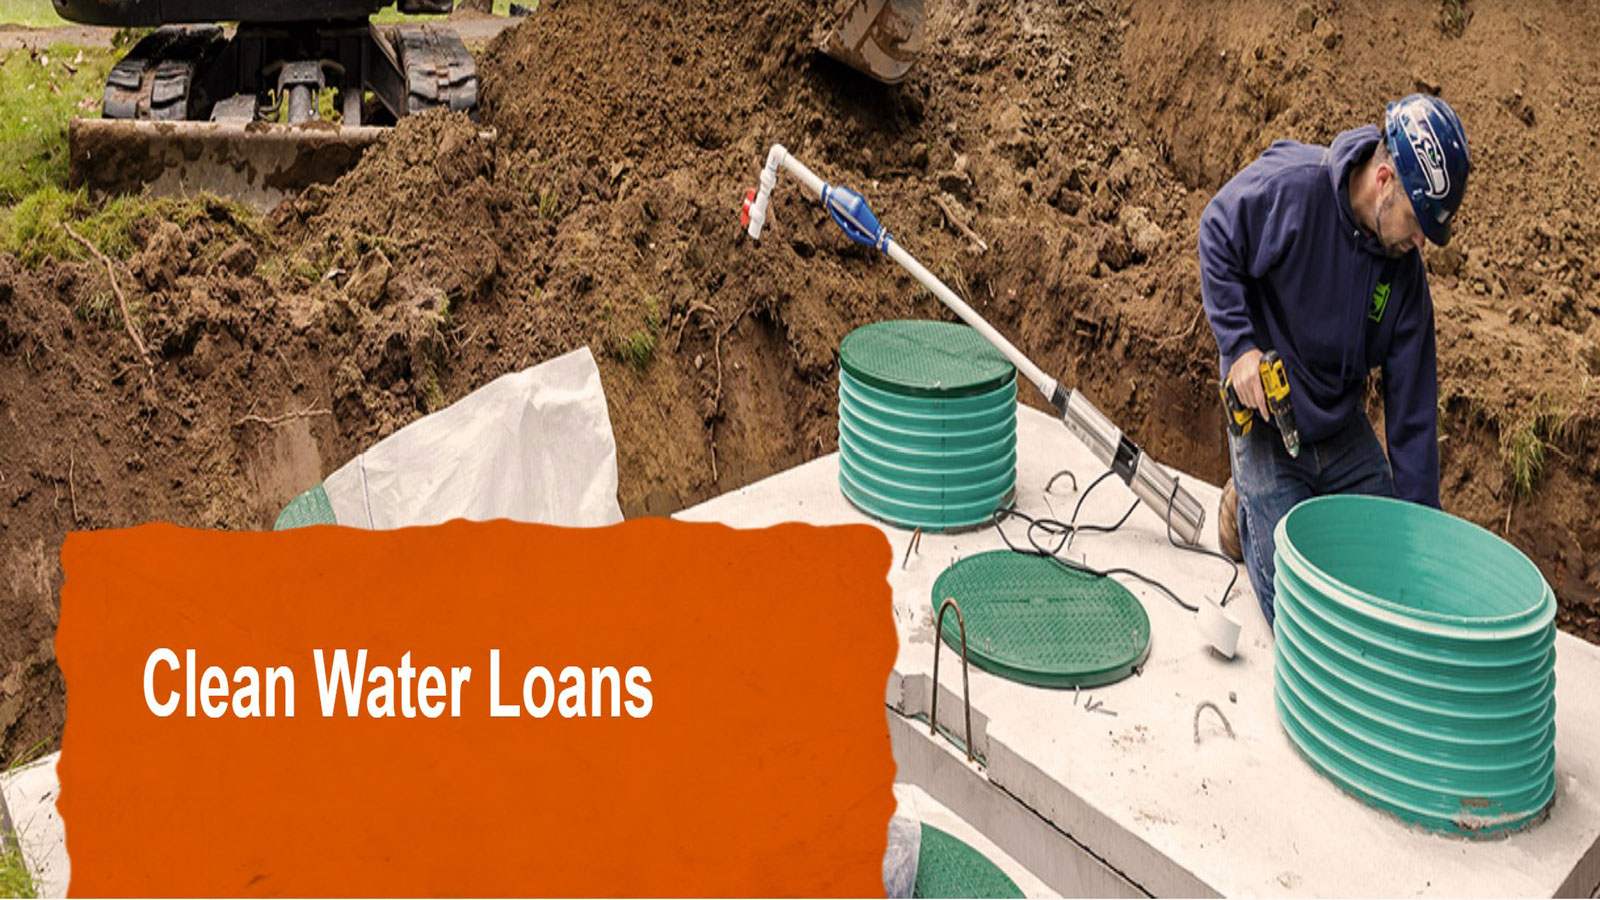 Loans for septic repairs, replacement now available to Chelan County